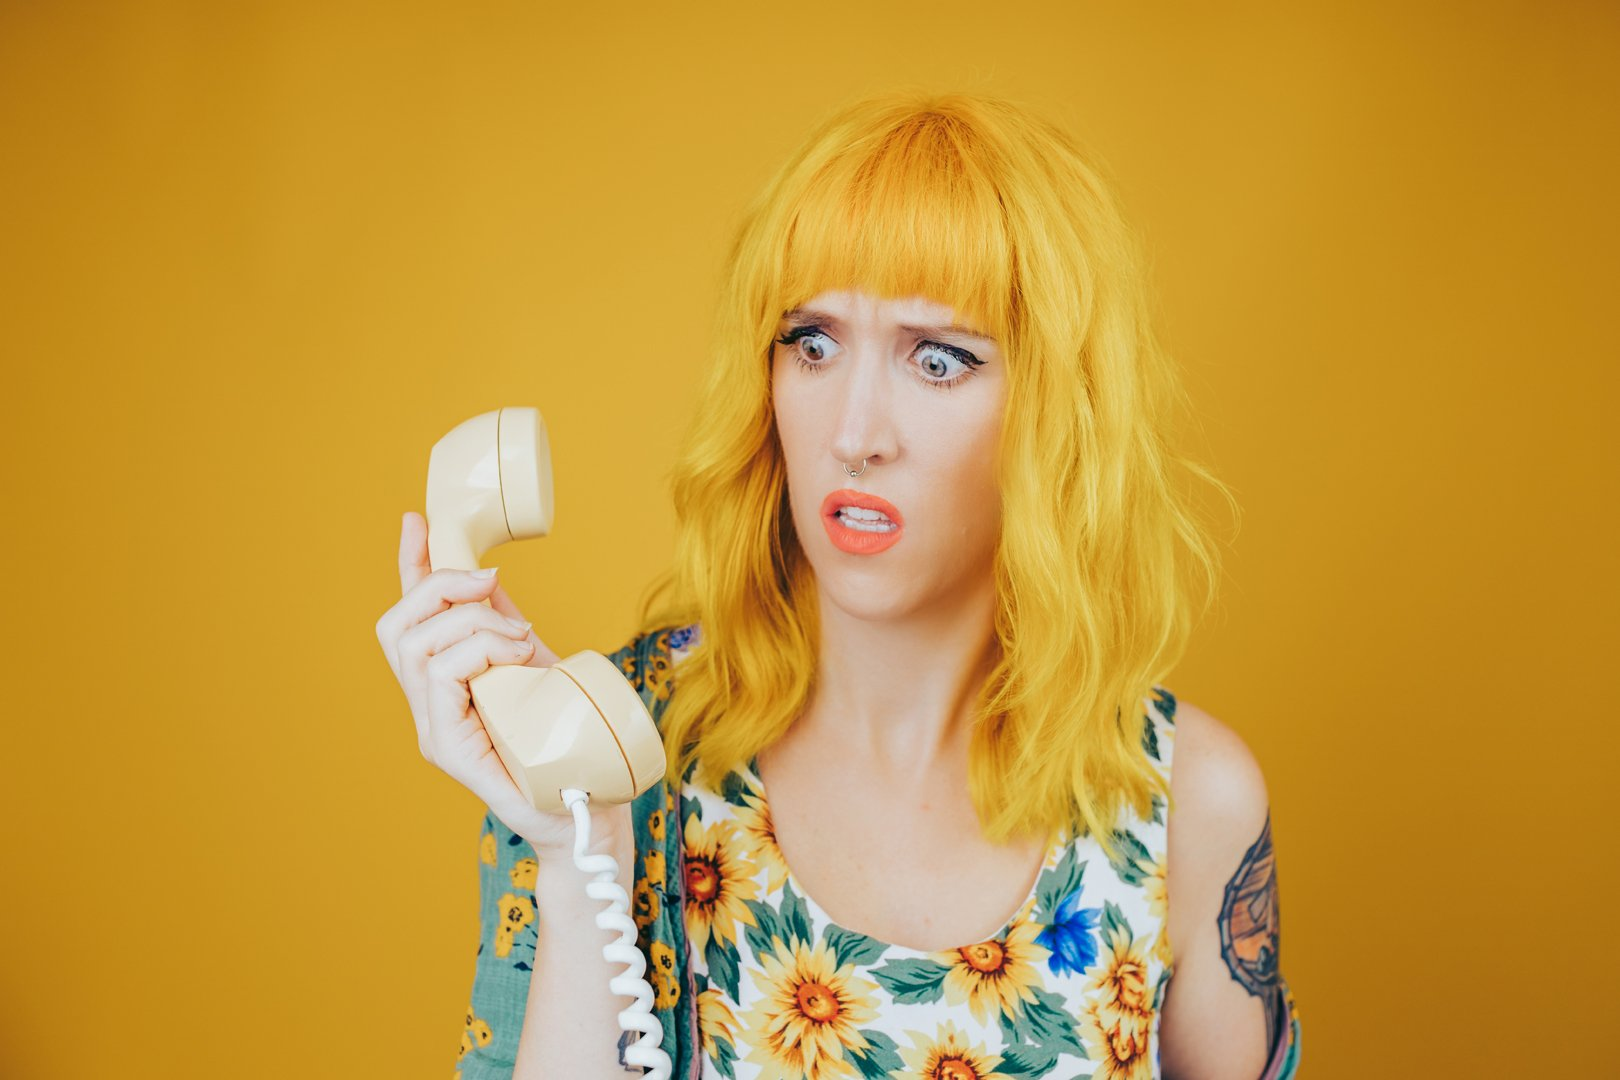 yellow haired woman holding yellow phone on yellow background